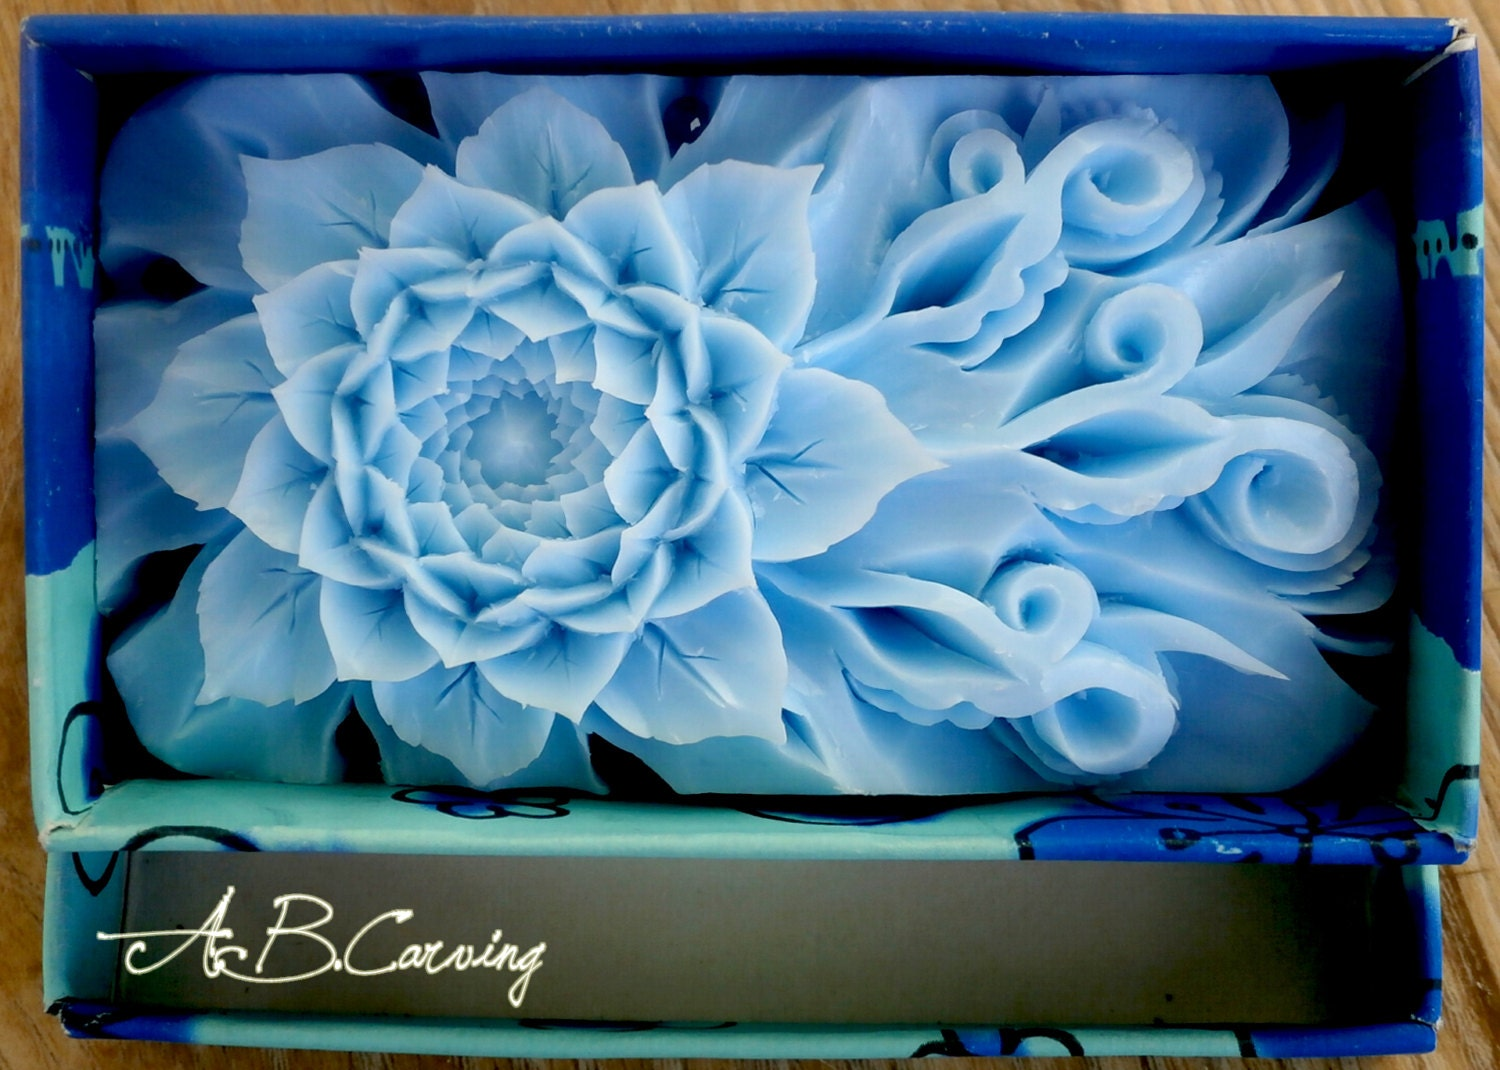 Carving Lotus soap soap carving flower blue Lotus soap